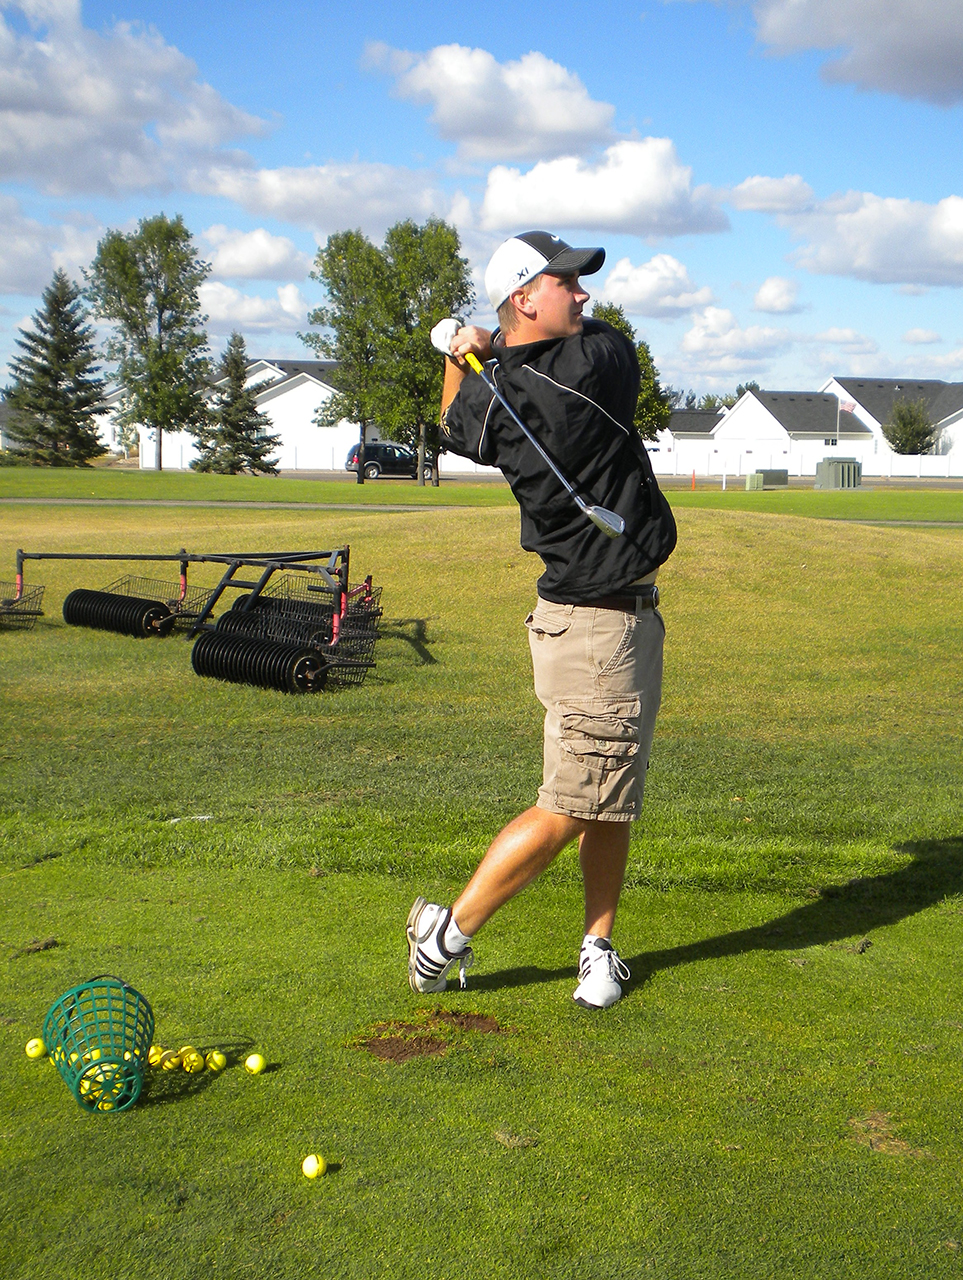 Photo by Jamie Telander. Golfer Andrew Whitchurch tees off at practice.